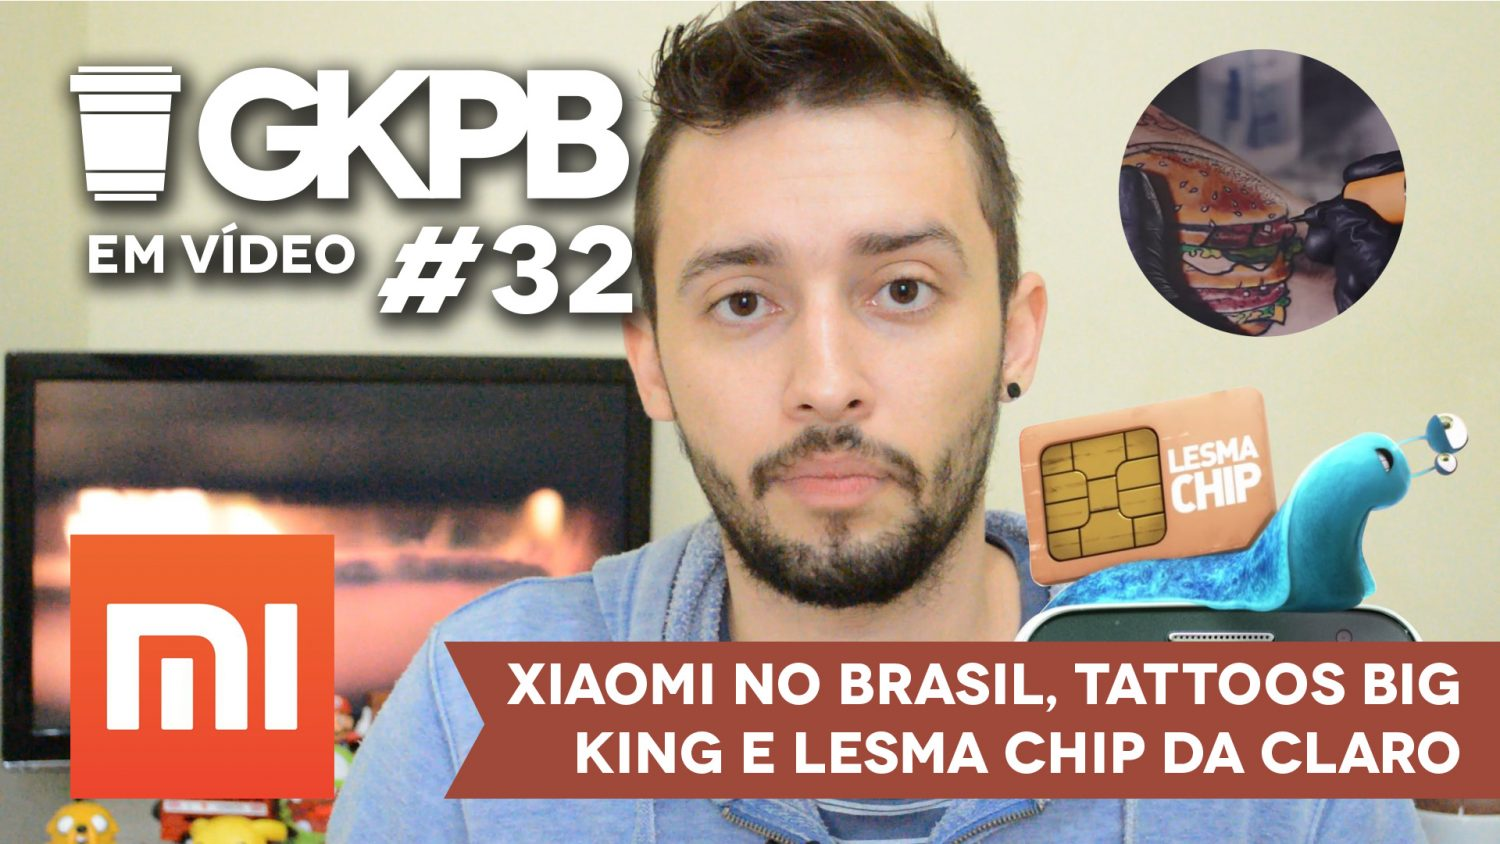 gkpb-em-video-xiaomi-brasil-burger-king-big-mac-tattooss-big-king-claro-lesma-chip-blog-geek-publicitario